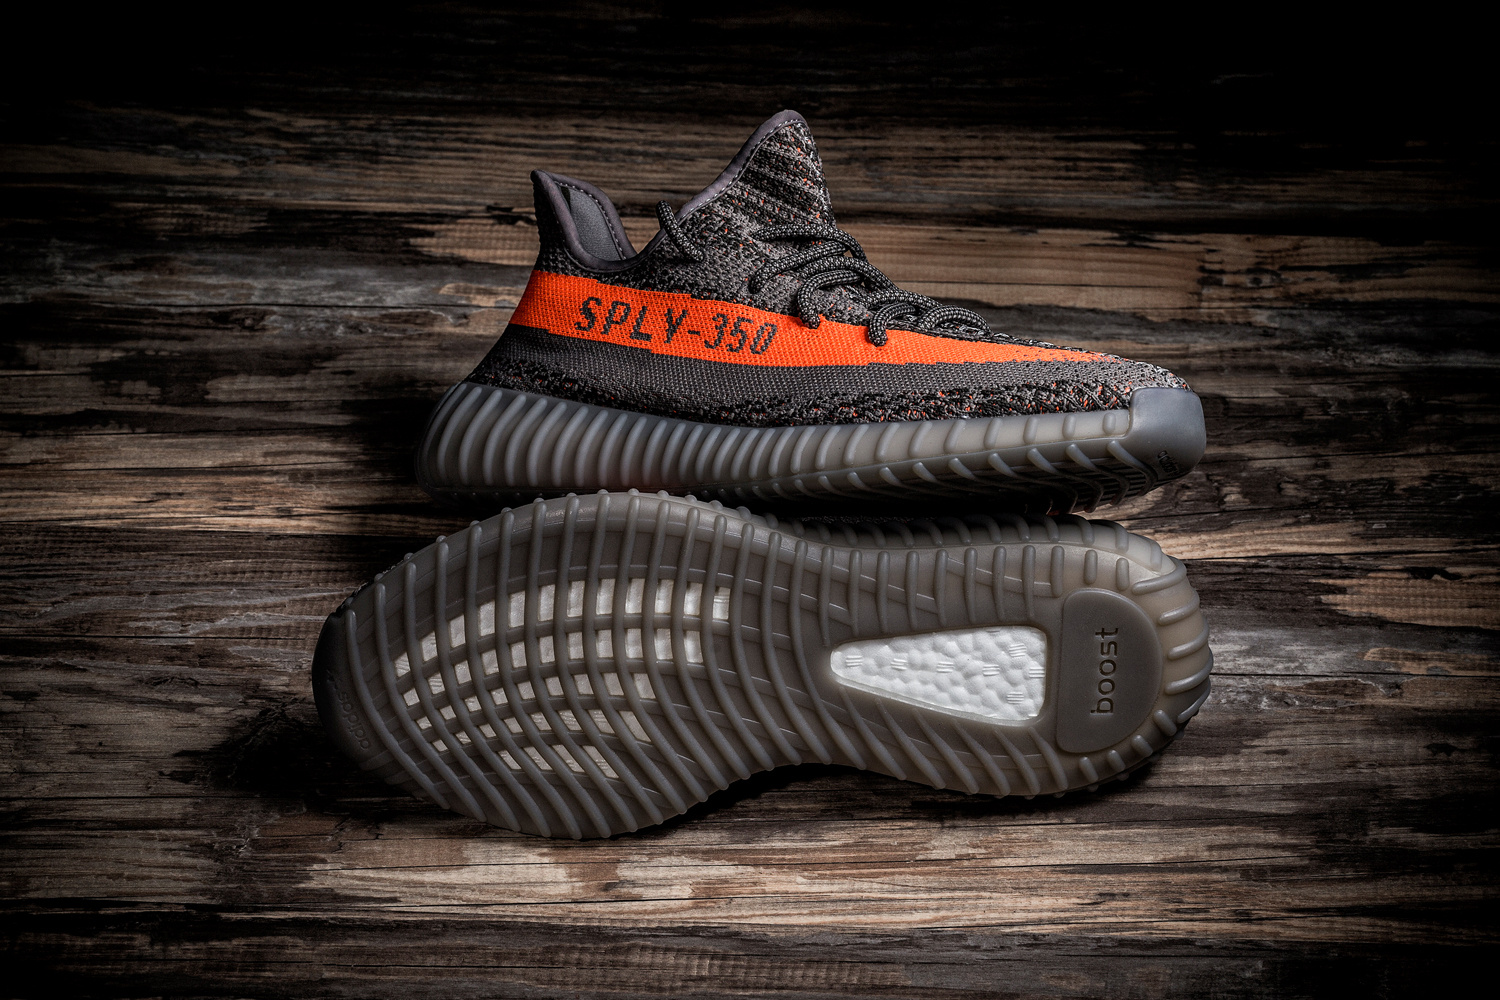 Adidas Yeezy 350 Boost V2 Beluga 2.0 Review from: www.topkickss